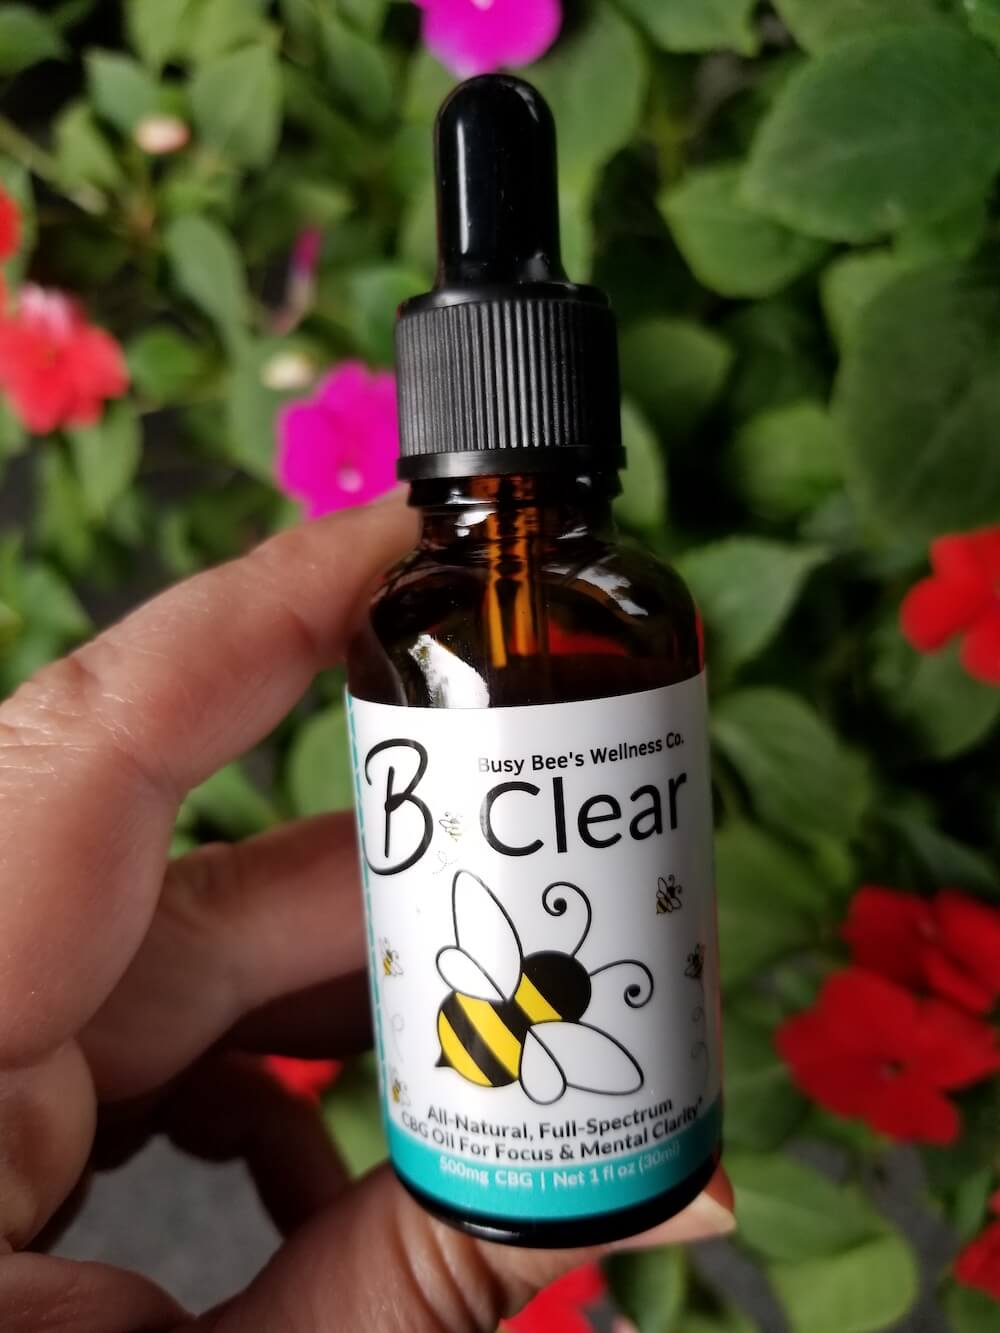 Busy Bee's B-Clear CBD Oil for brain and gut health